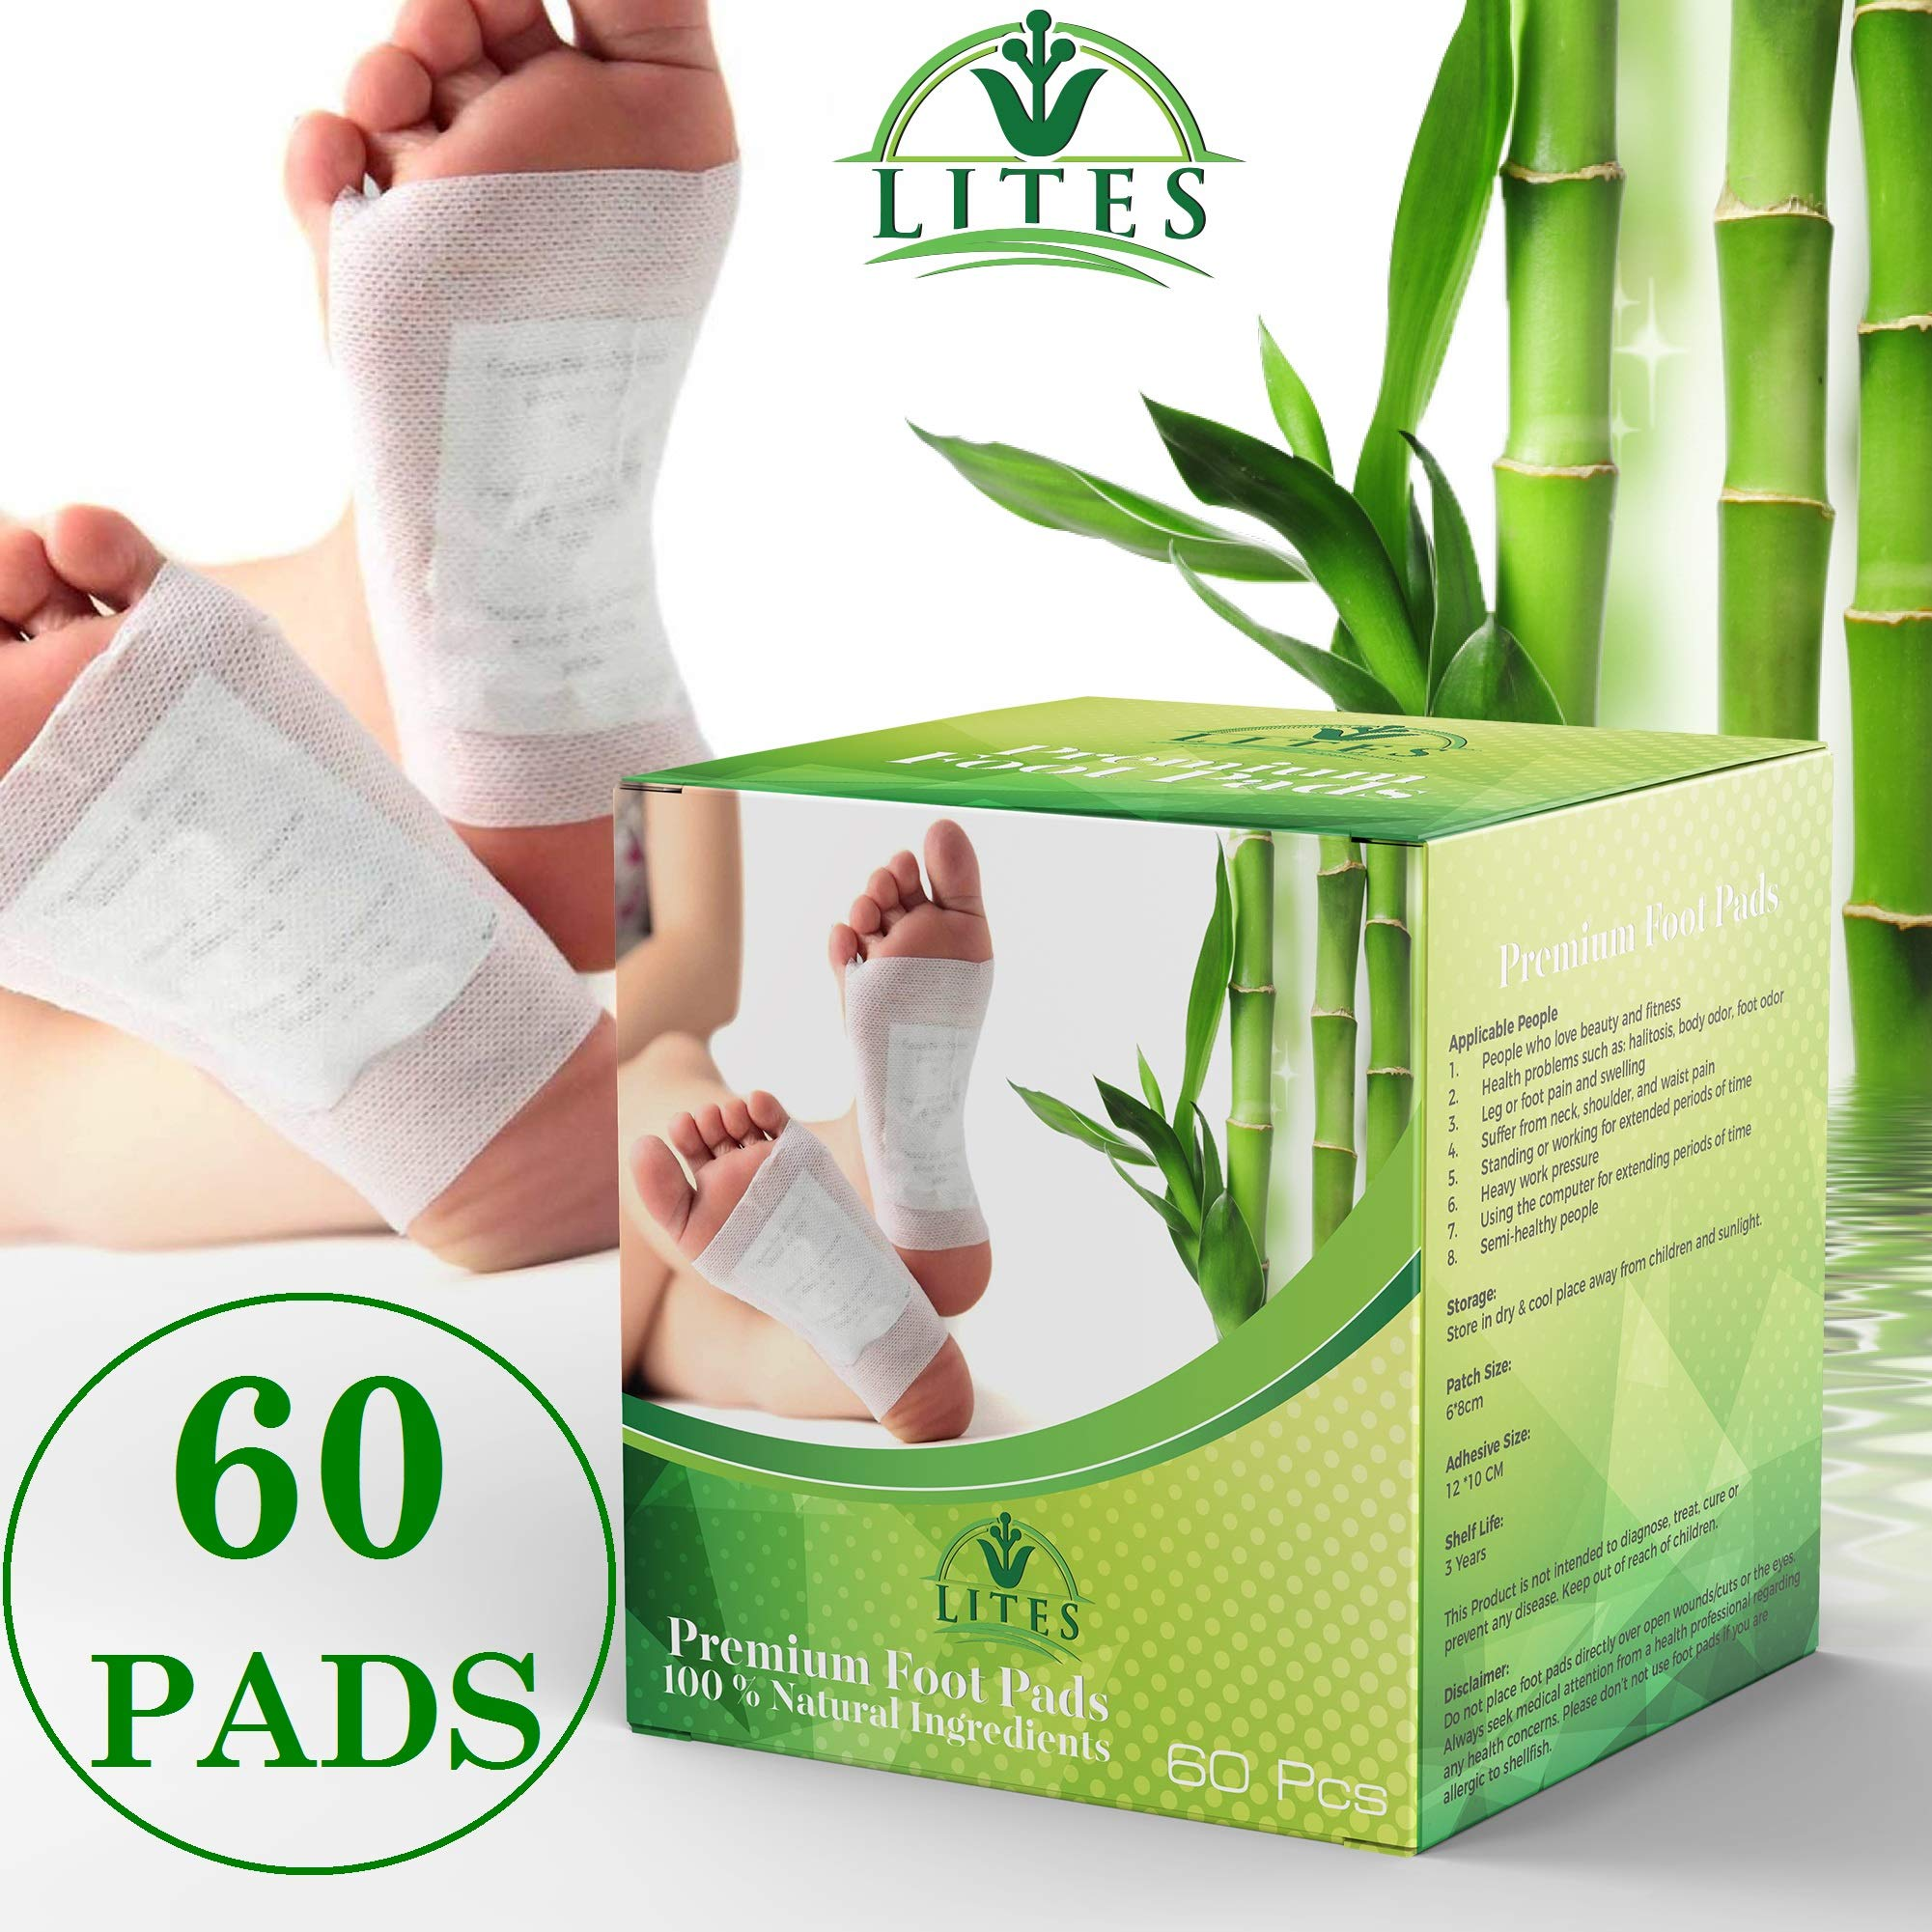 LITES Foot Pads - (60pcs) Premium Foot Patch, Relieve Stress | Organic & Natural Foot Pad | Sleep Better